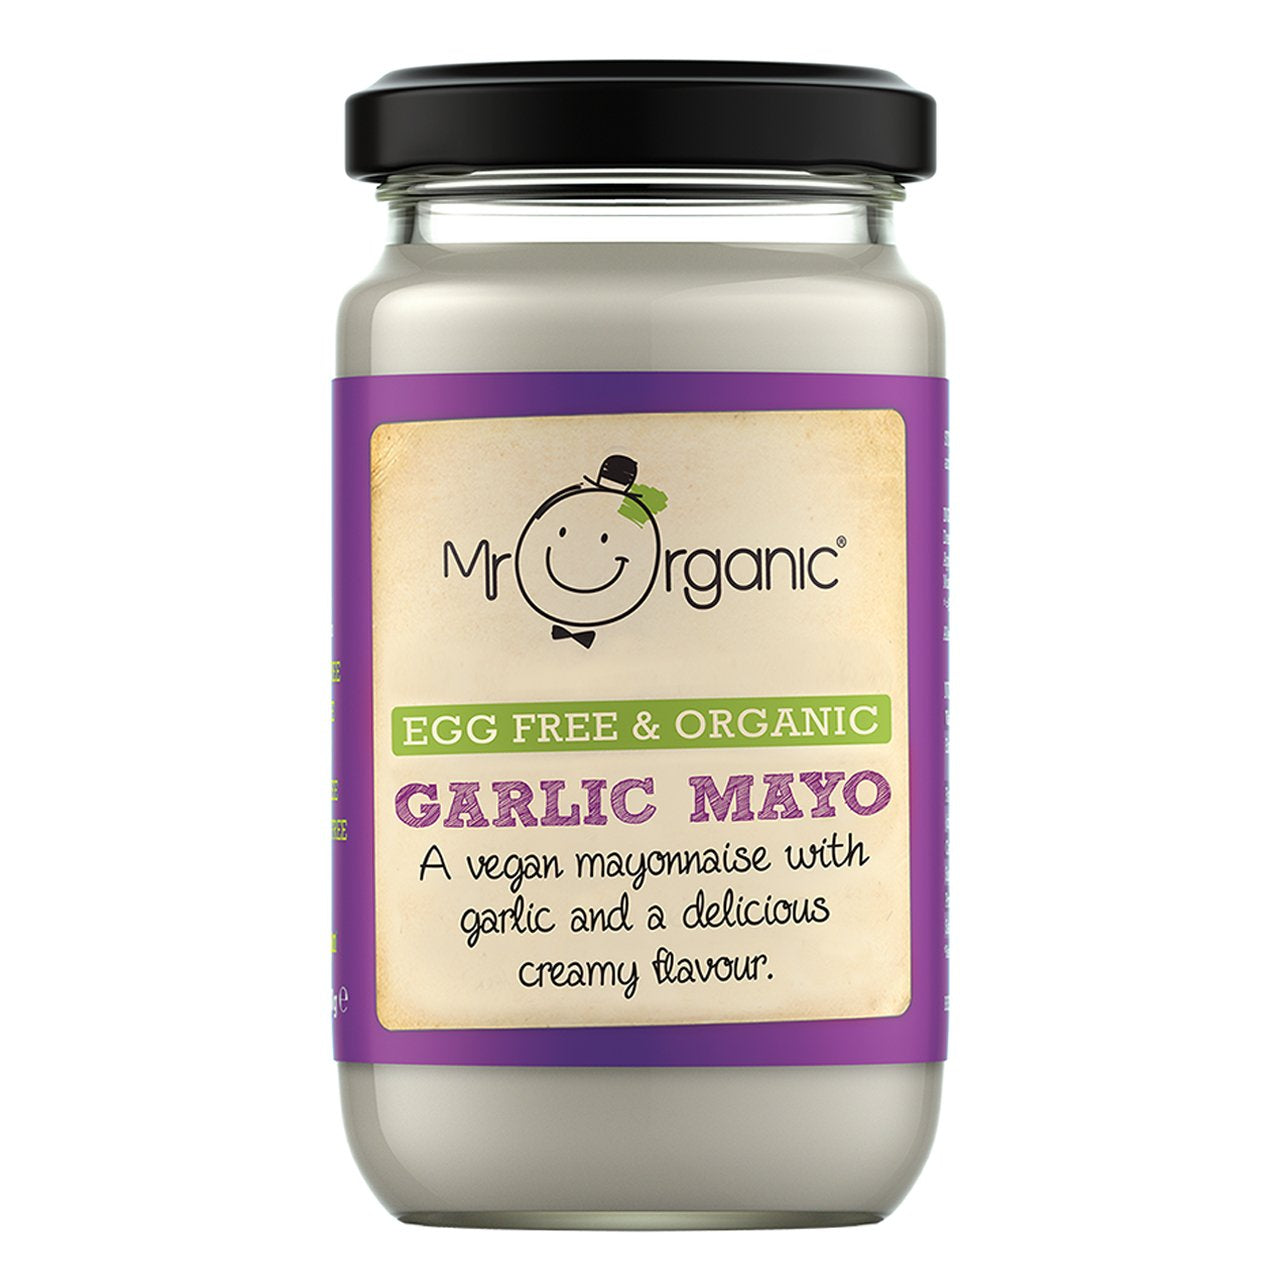 Mr Organic Egg Free & Organic Garlic Mayo (6x180g)